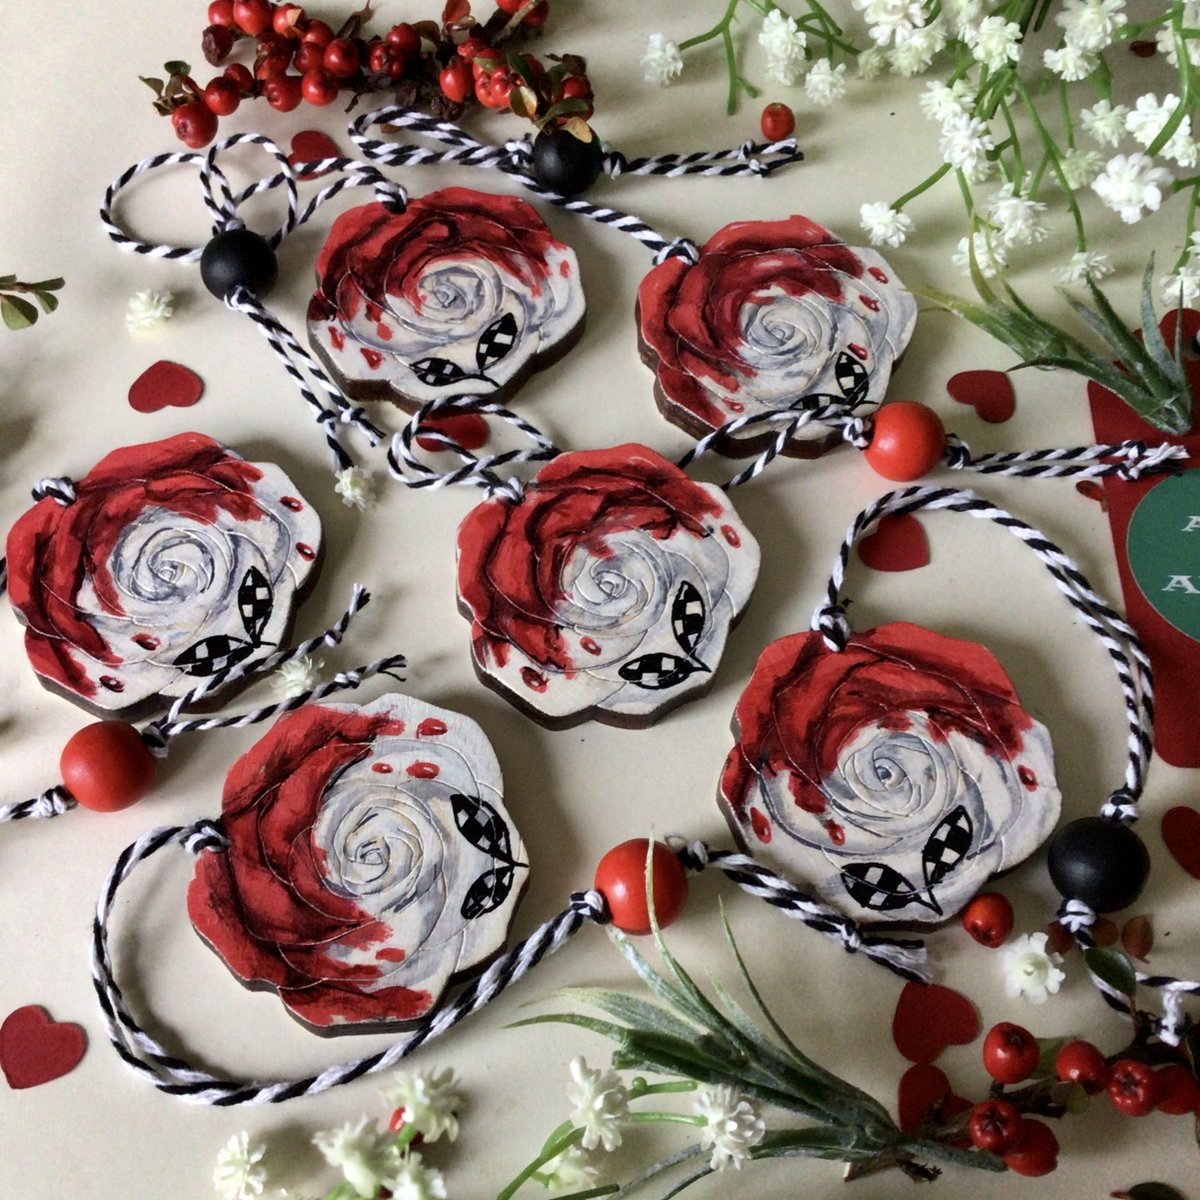 All Of Alice On Twitter Some Of My Hand Painted Roses In Ceramic Stone And Wood Lots More In My Etsy Shop Ukgiftam Ukgifthour Aliceinwonderland Giftideas Valentinesday Https T Co U9pwgrphpr Https T Co Jn18jmztjm